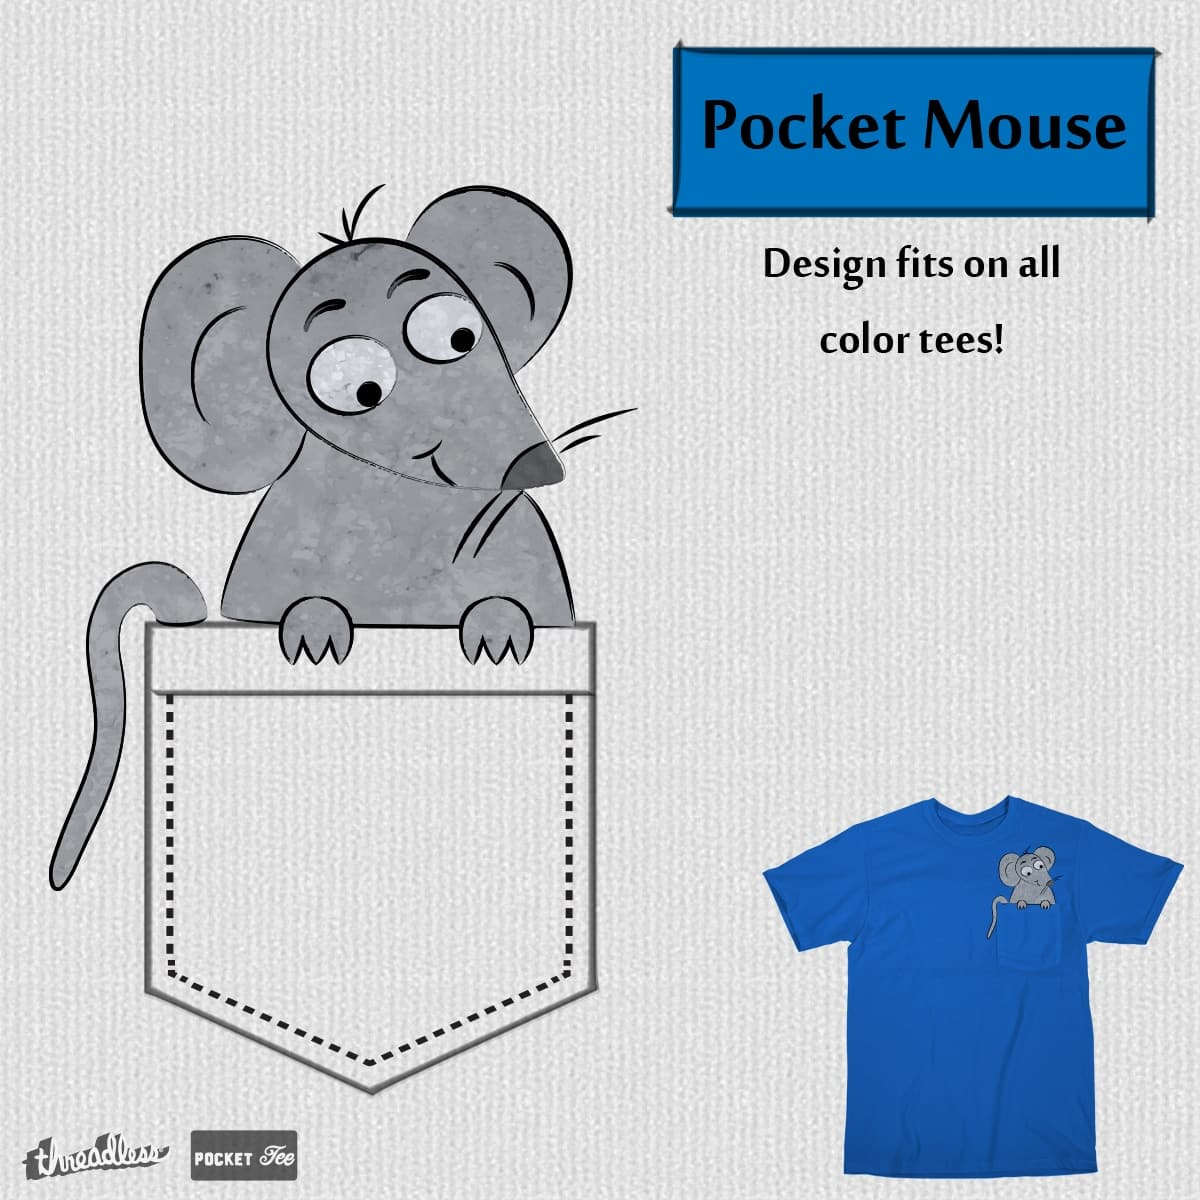 Pocket Mouse by IrisCatharina on Threadless